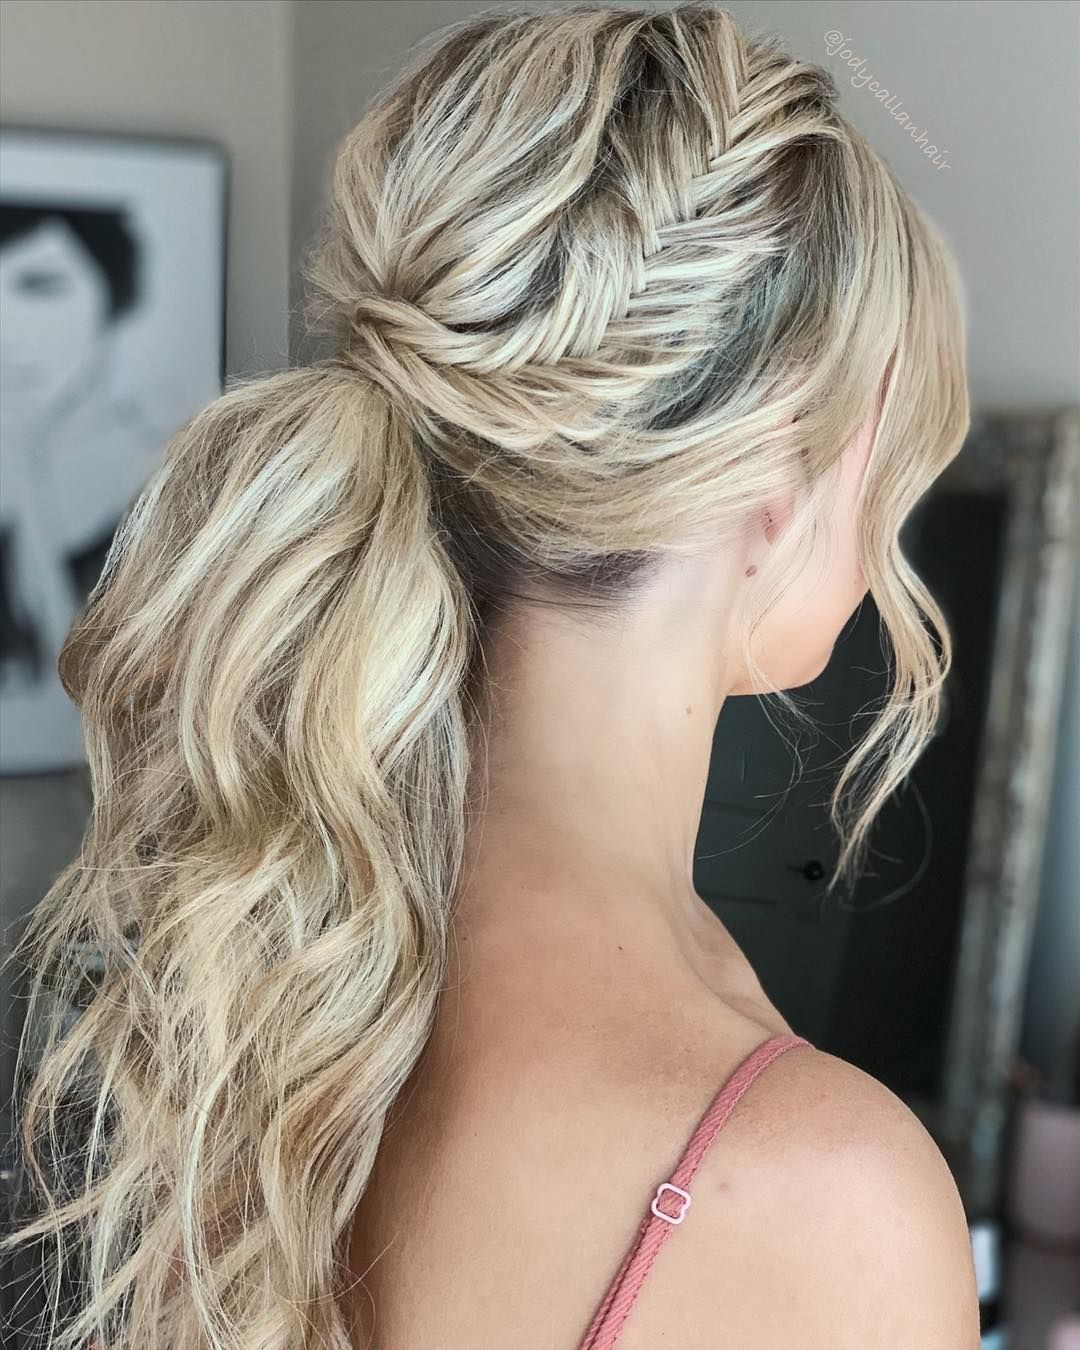 hair by @jodycallanhair for my beautiful bride to be for her